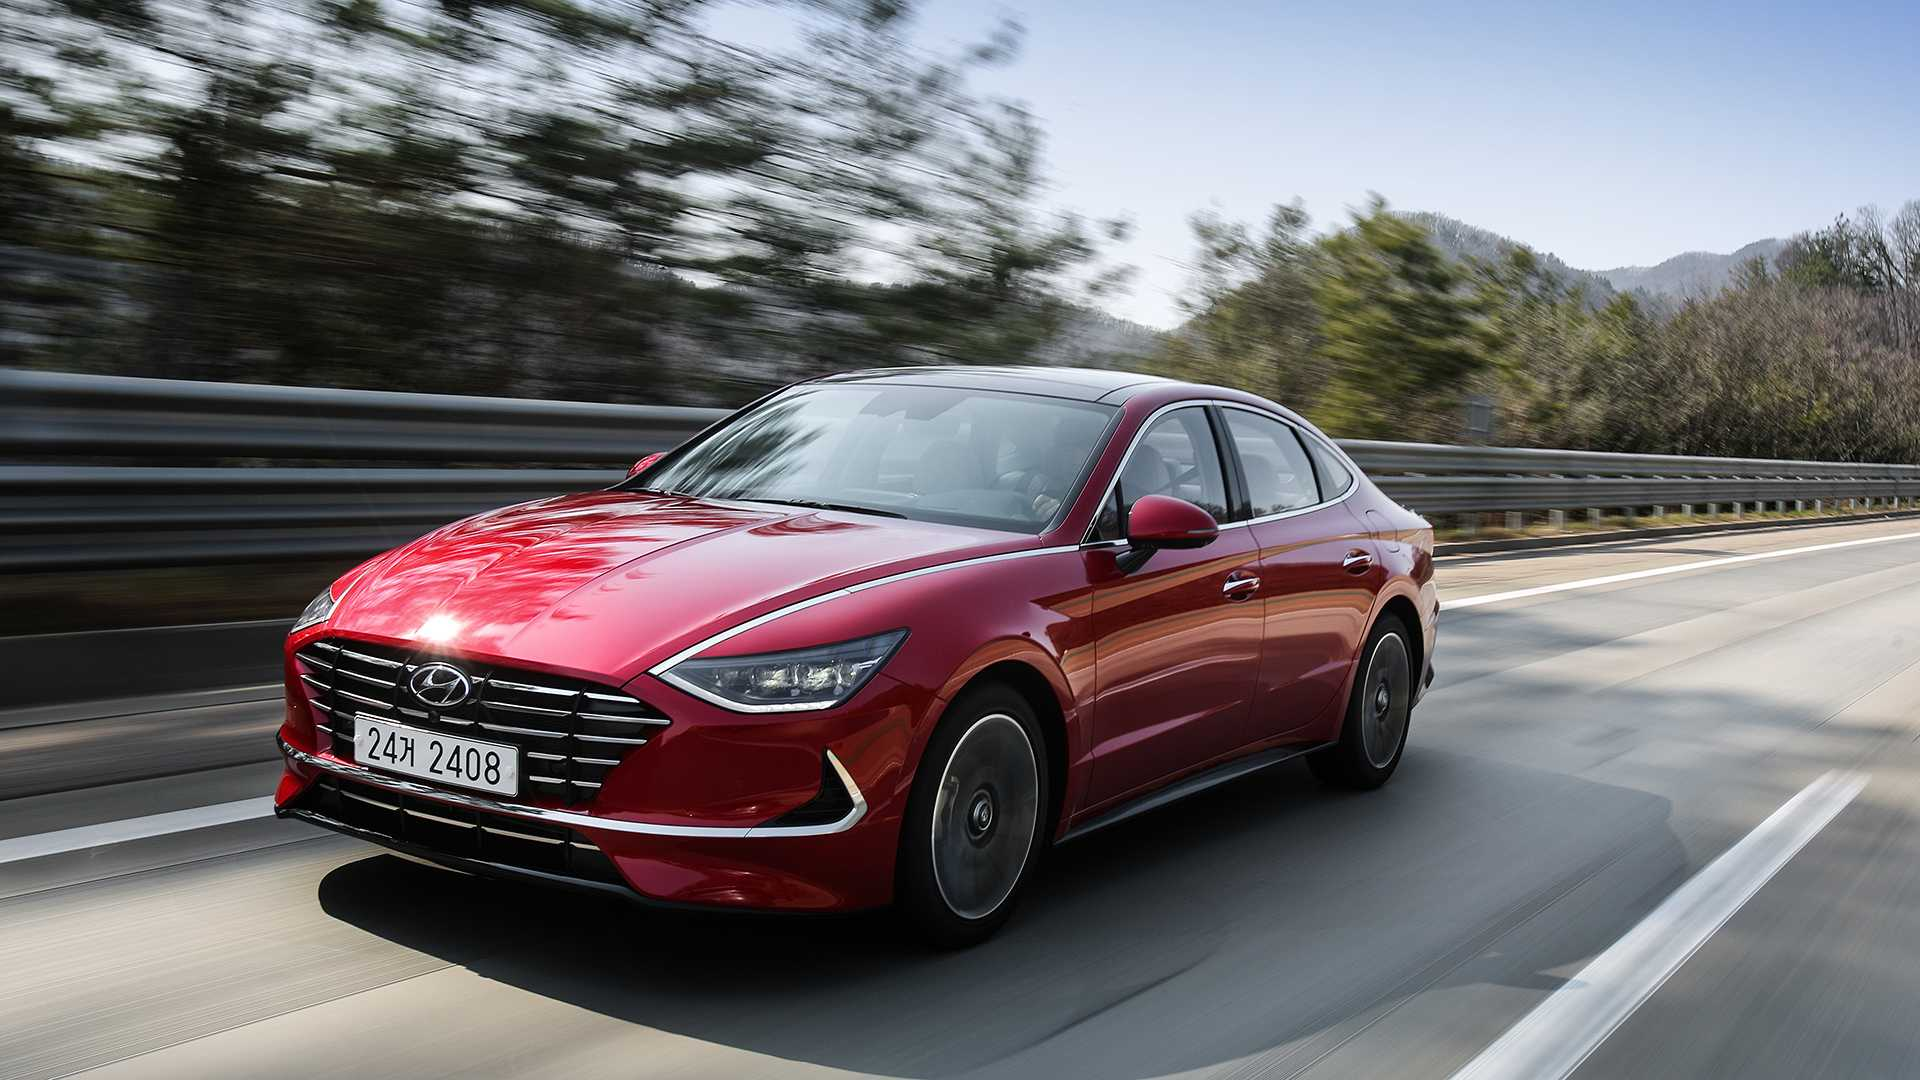 58 All New Hyundai Sonata 2020 Exterior and Interior with Hyundai Sonata 2020